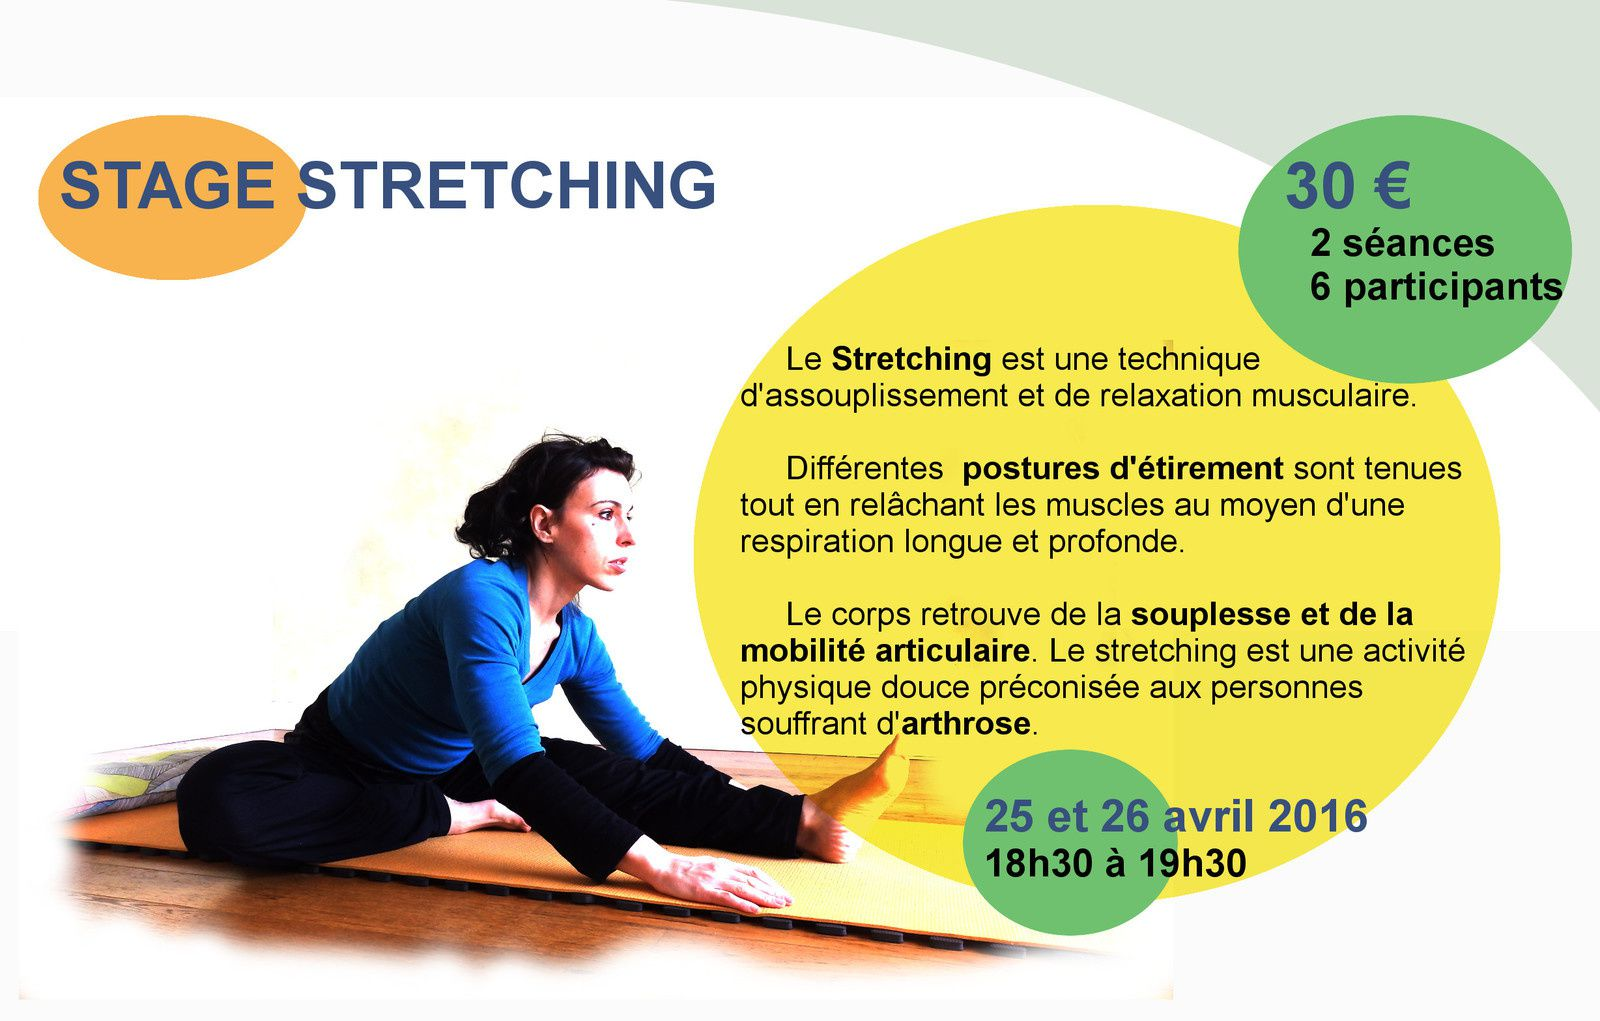 Stage de Stretching avril 2016